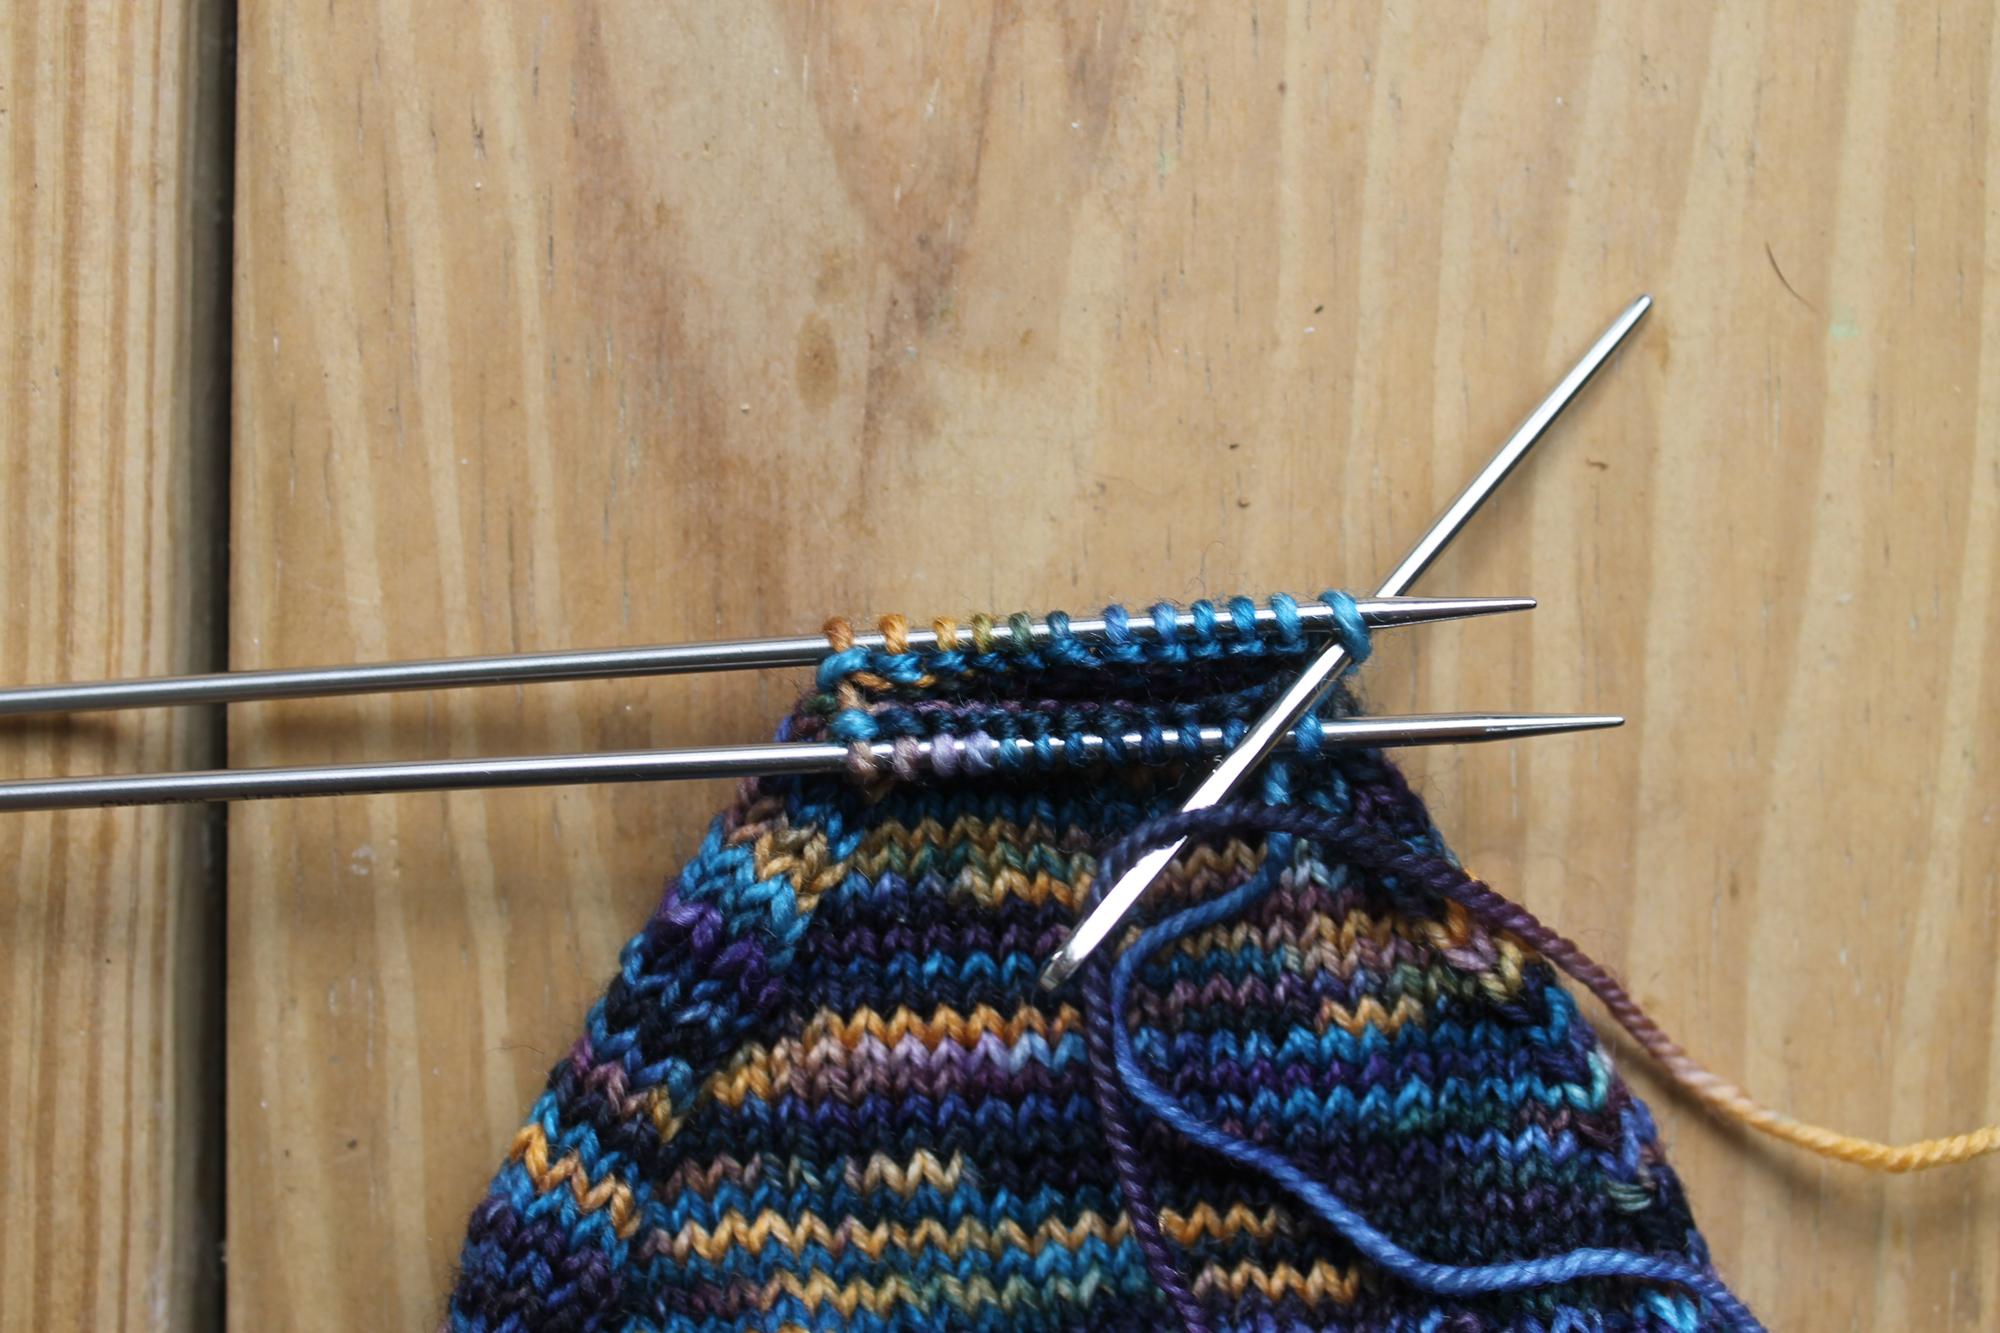 Inserting the needle knitwise